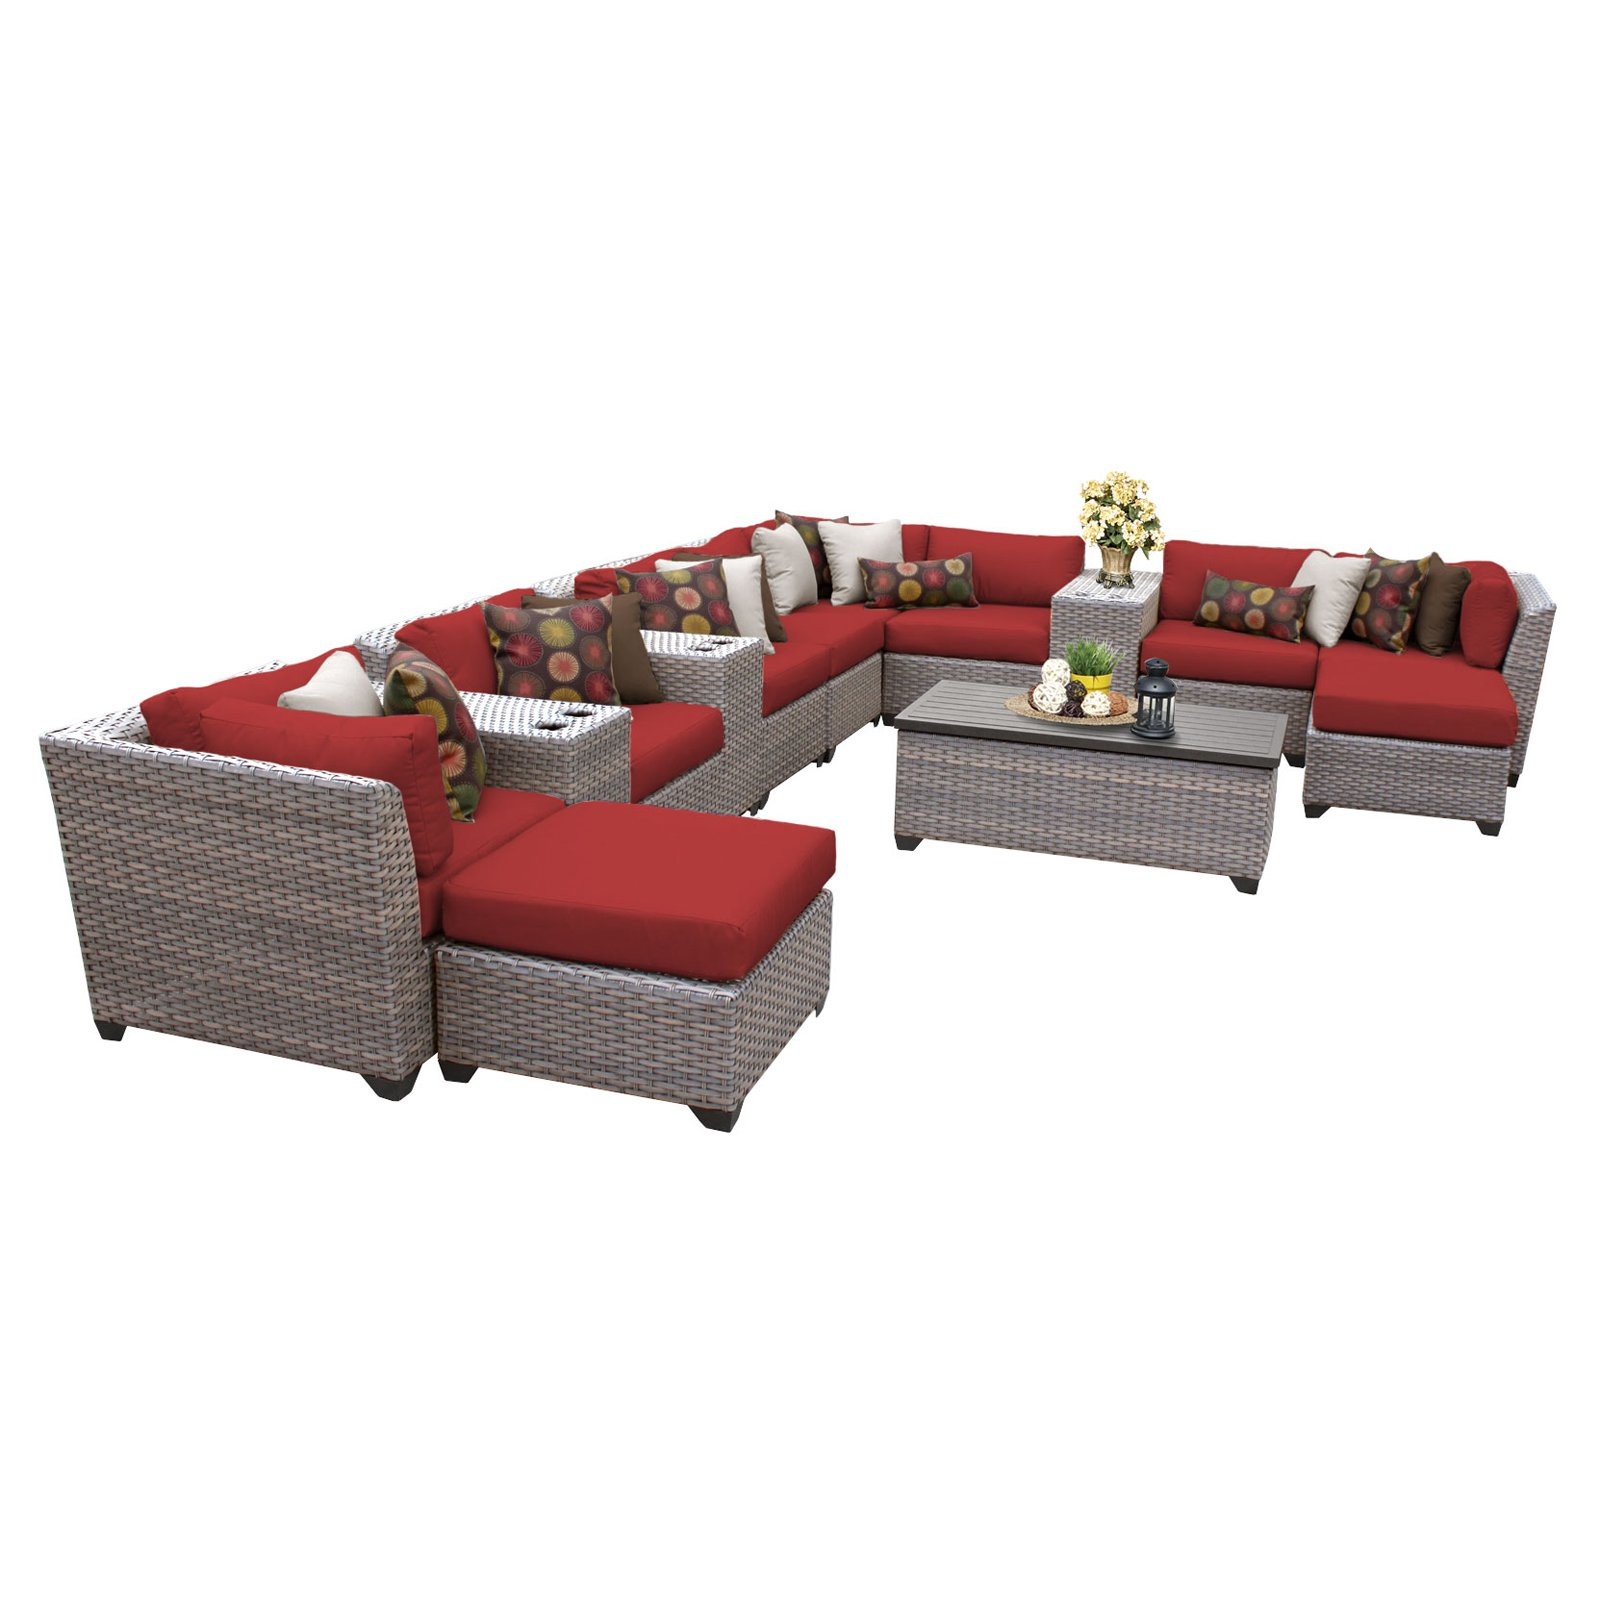 tk classics florence wicker 14 piece patio conversation set with 2 sets of cushion covers